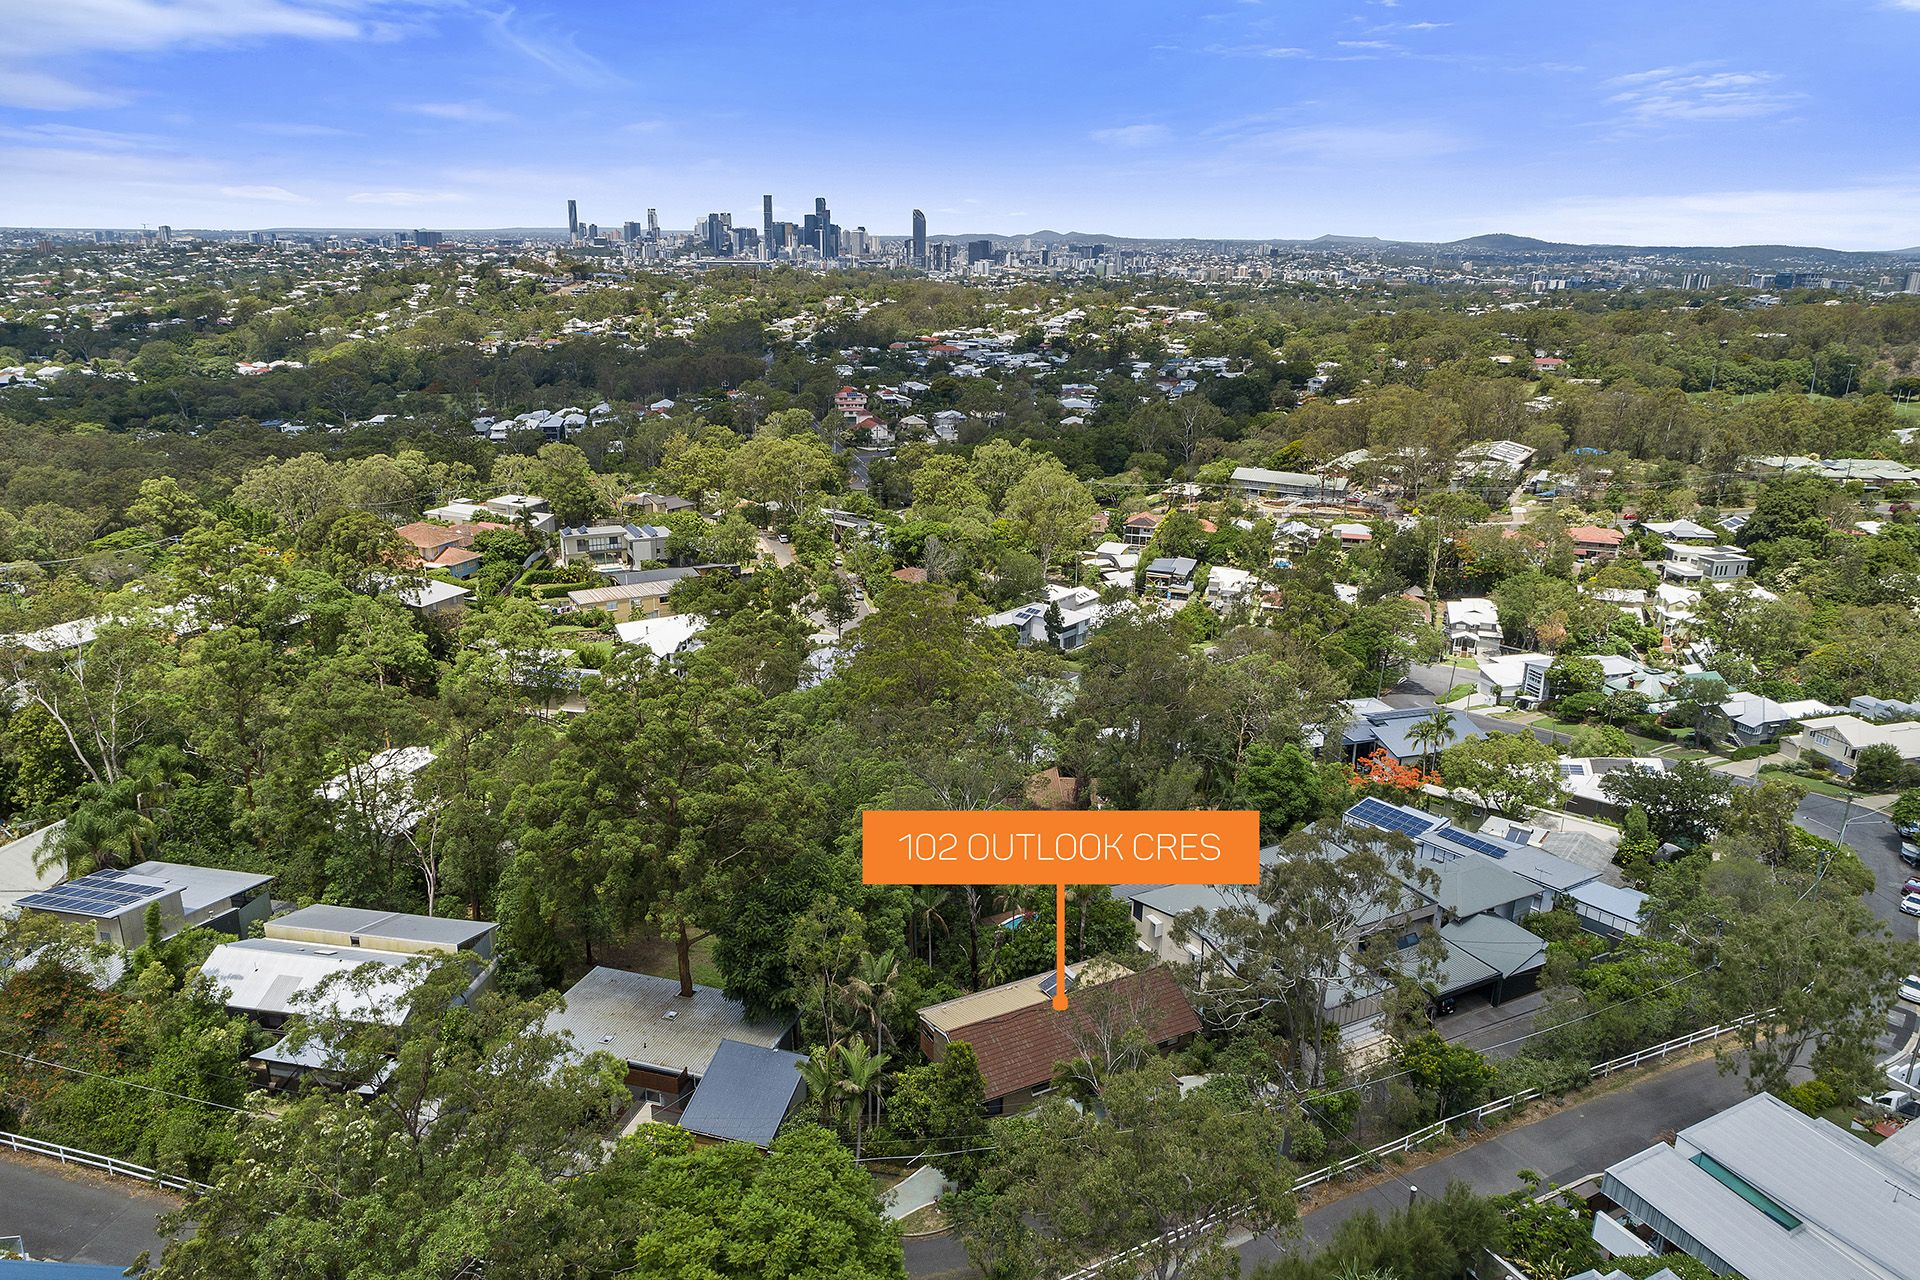 100 Outlook Crescent Bardon 4065